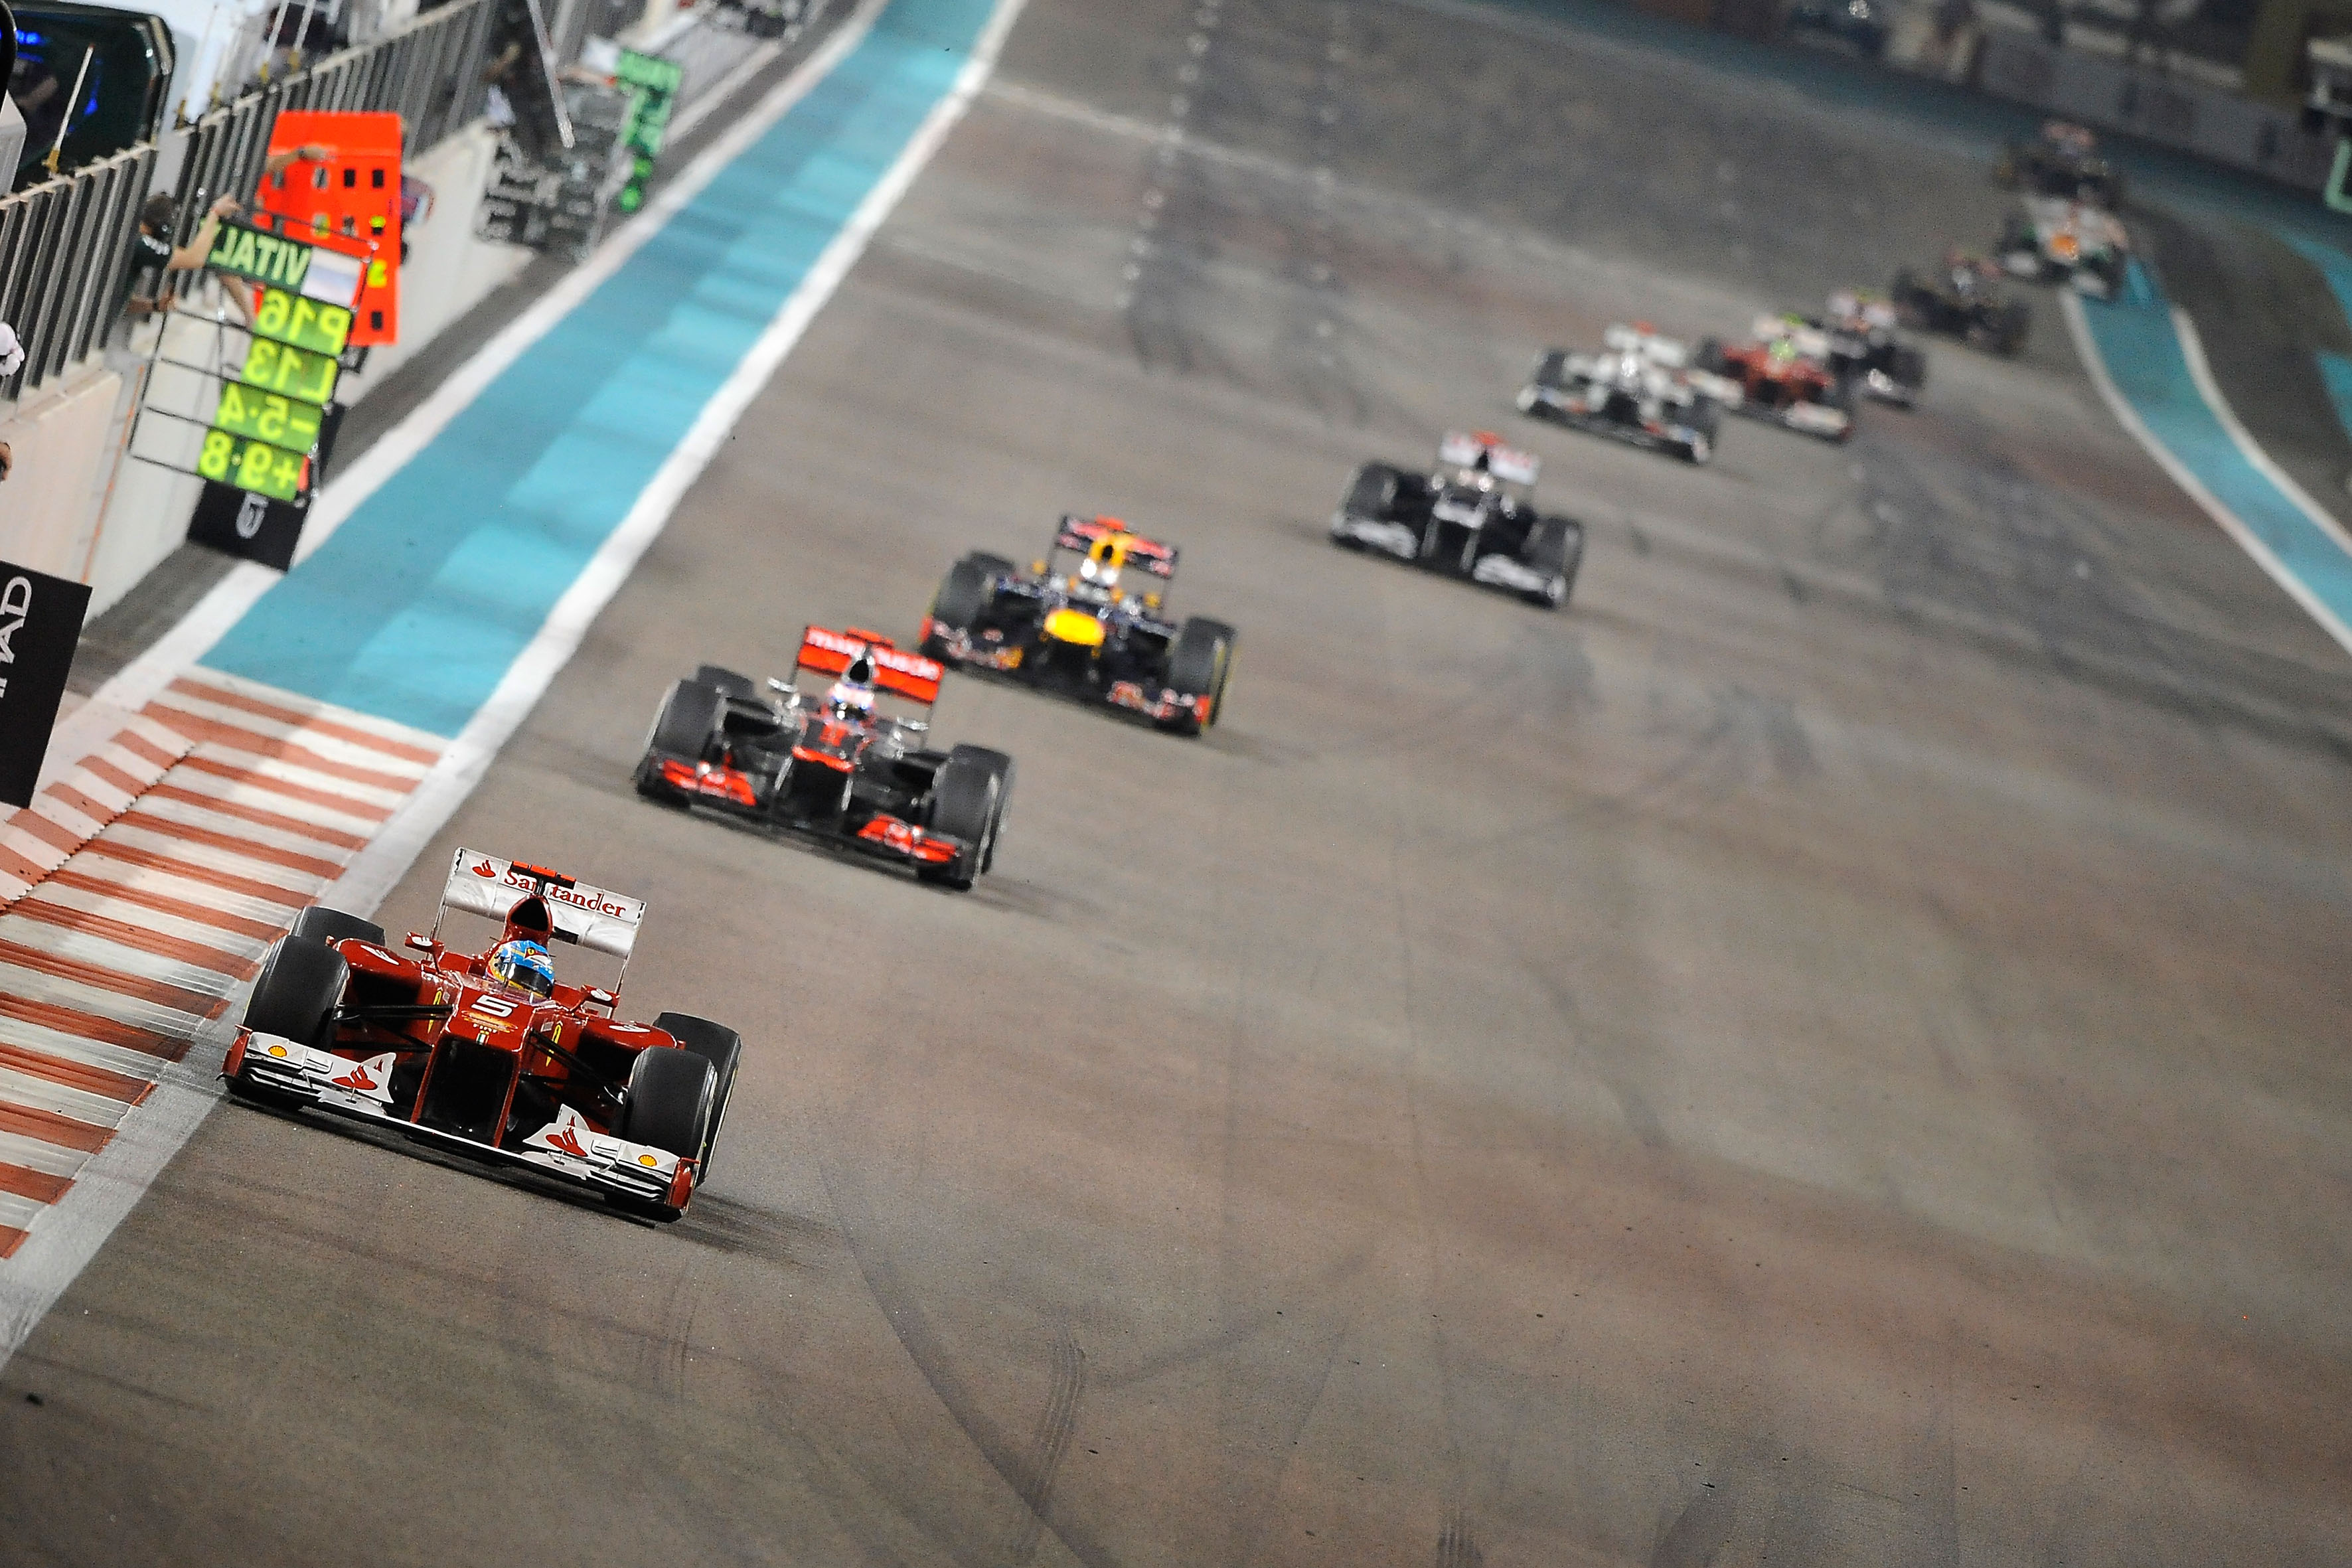 F1 cuts Carbon emissions by 7%